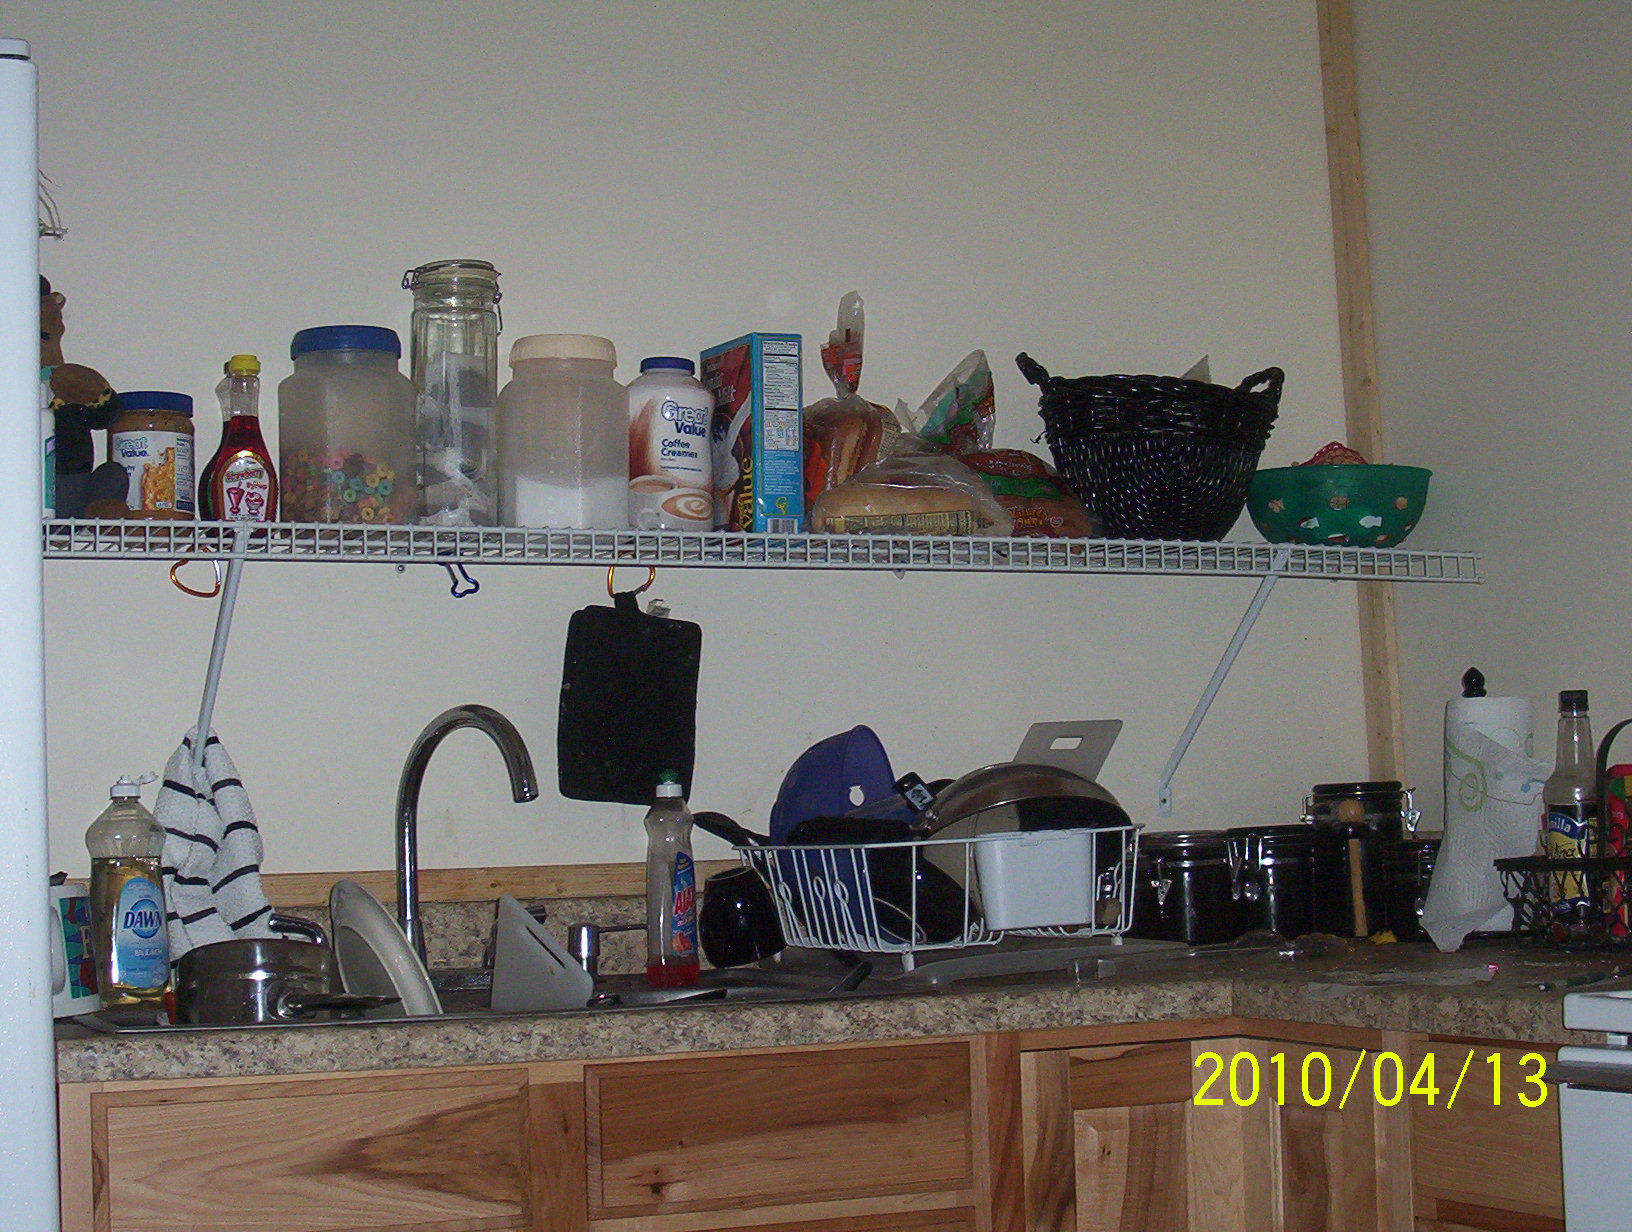 one kitchen shelf